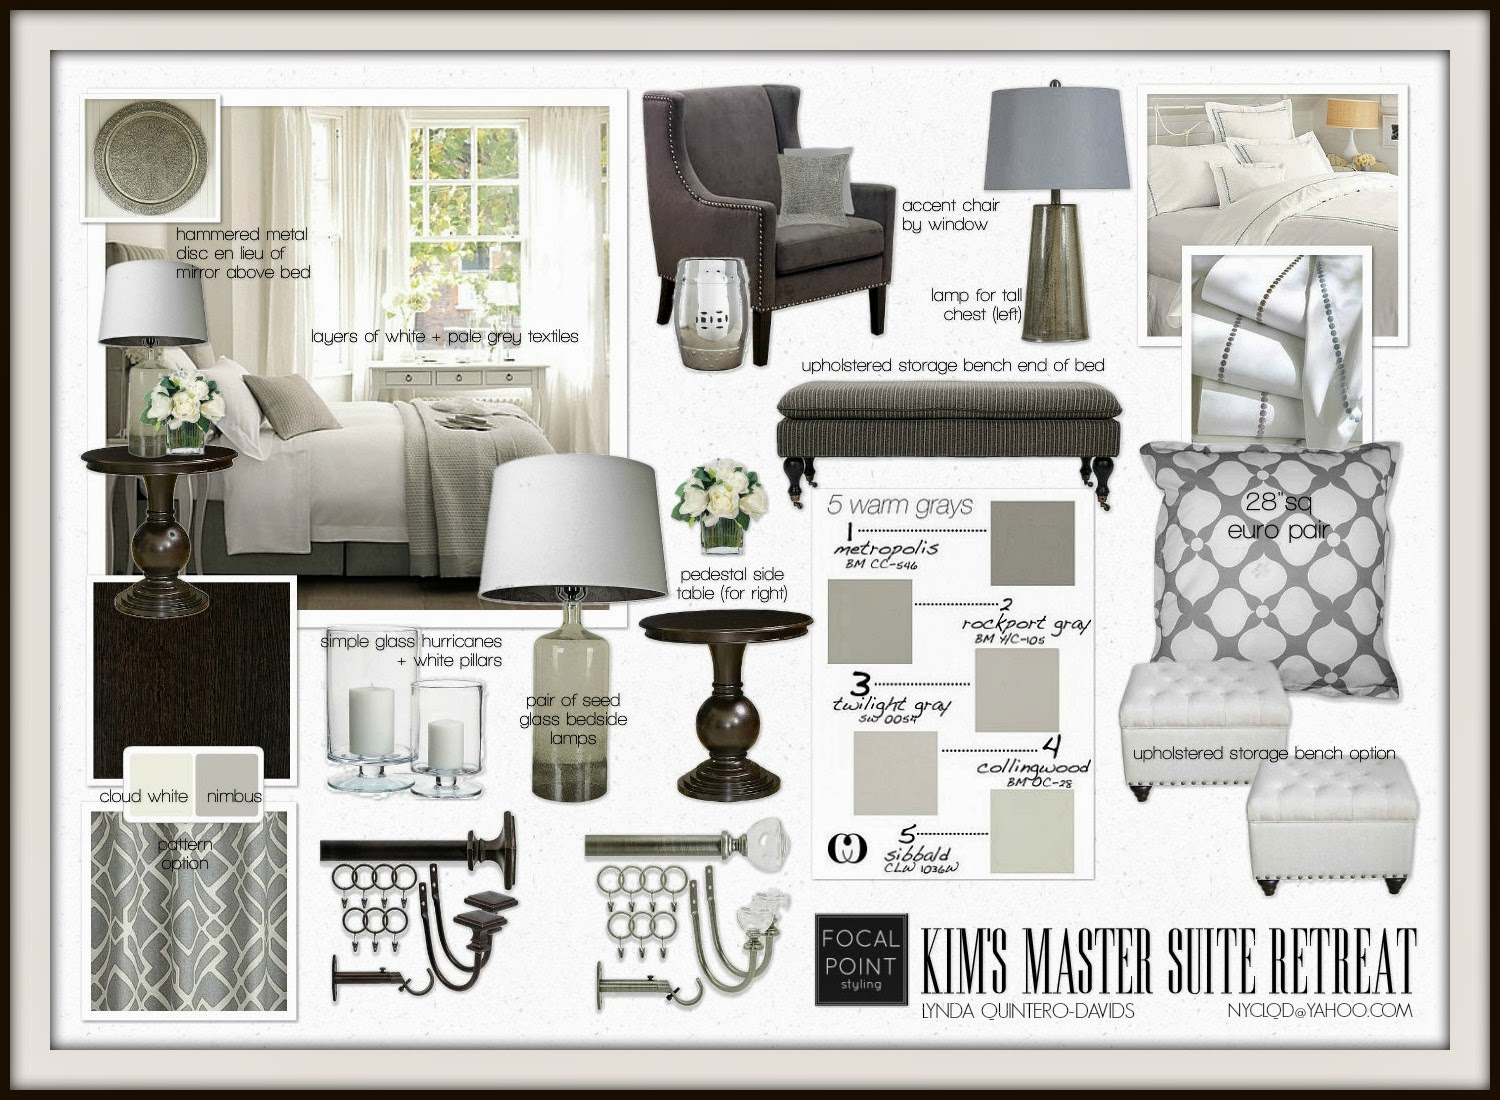 MASTER BEDROOM   STYLE GUIDANCE ON A SMALL BUDGET. FOCAL POINT STYLING  MASTER BEDROOM   STYLE GUIDANCE ON A SMALL BUDGET